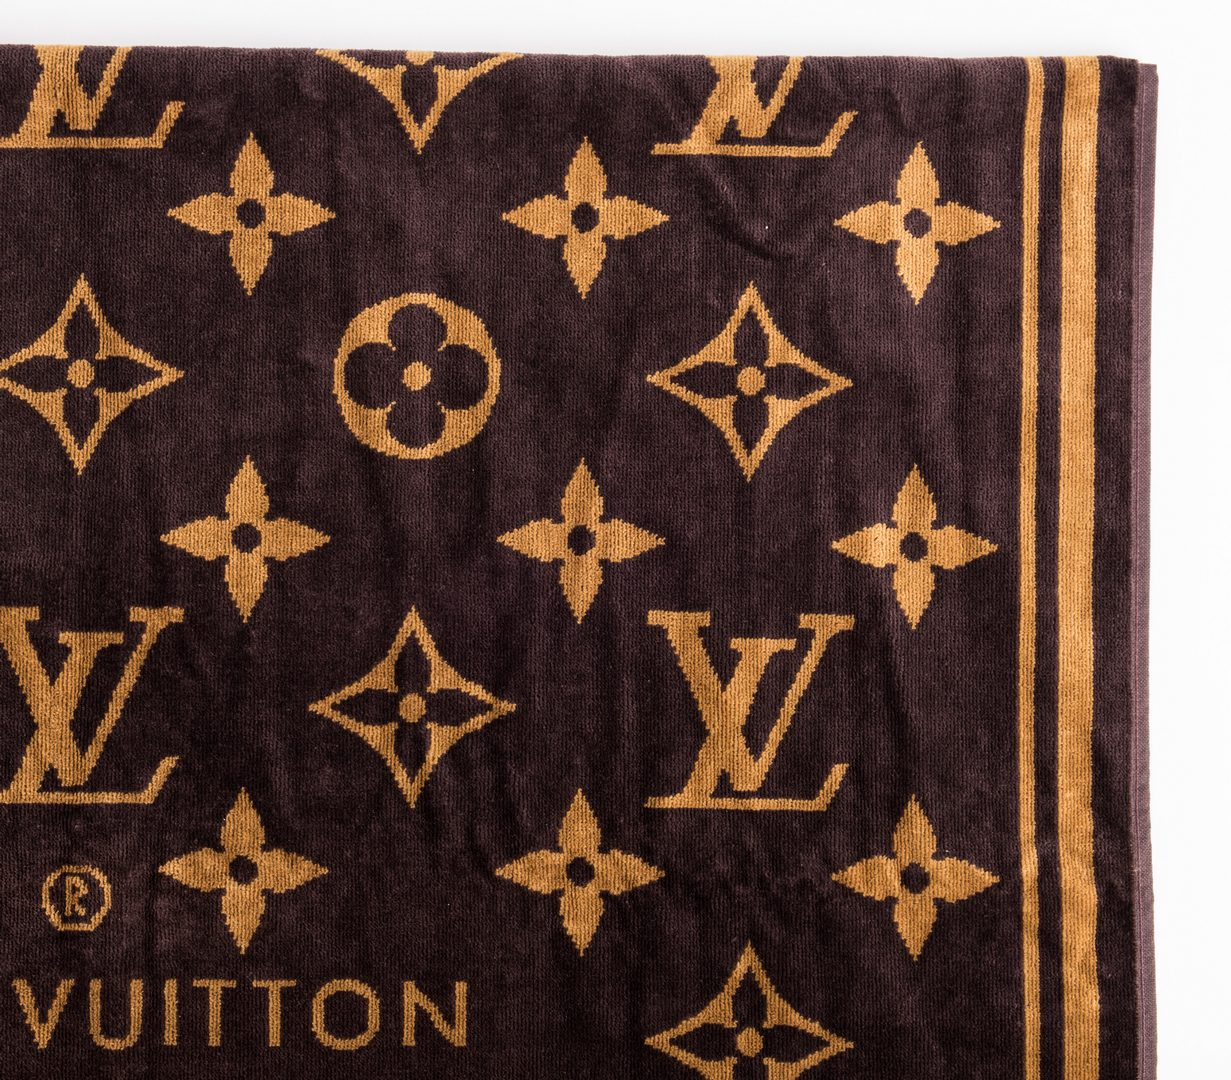 Lot 832: 4 Designor Louis Vuitton Items & 3 Related Books